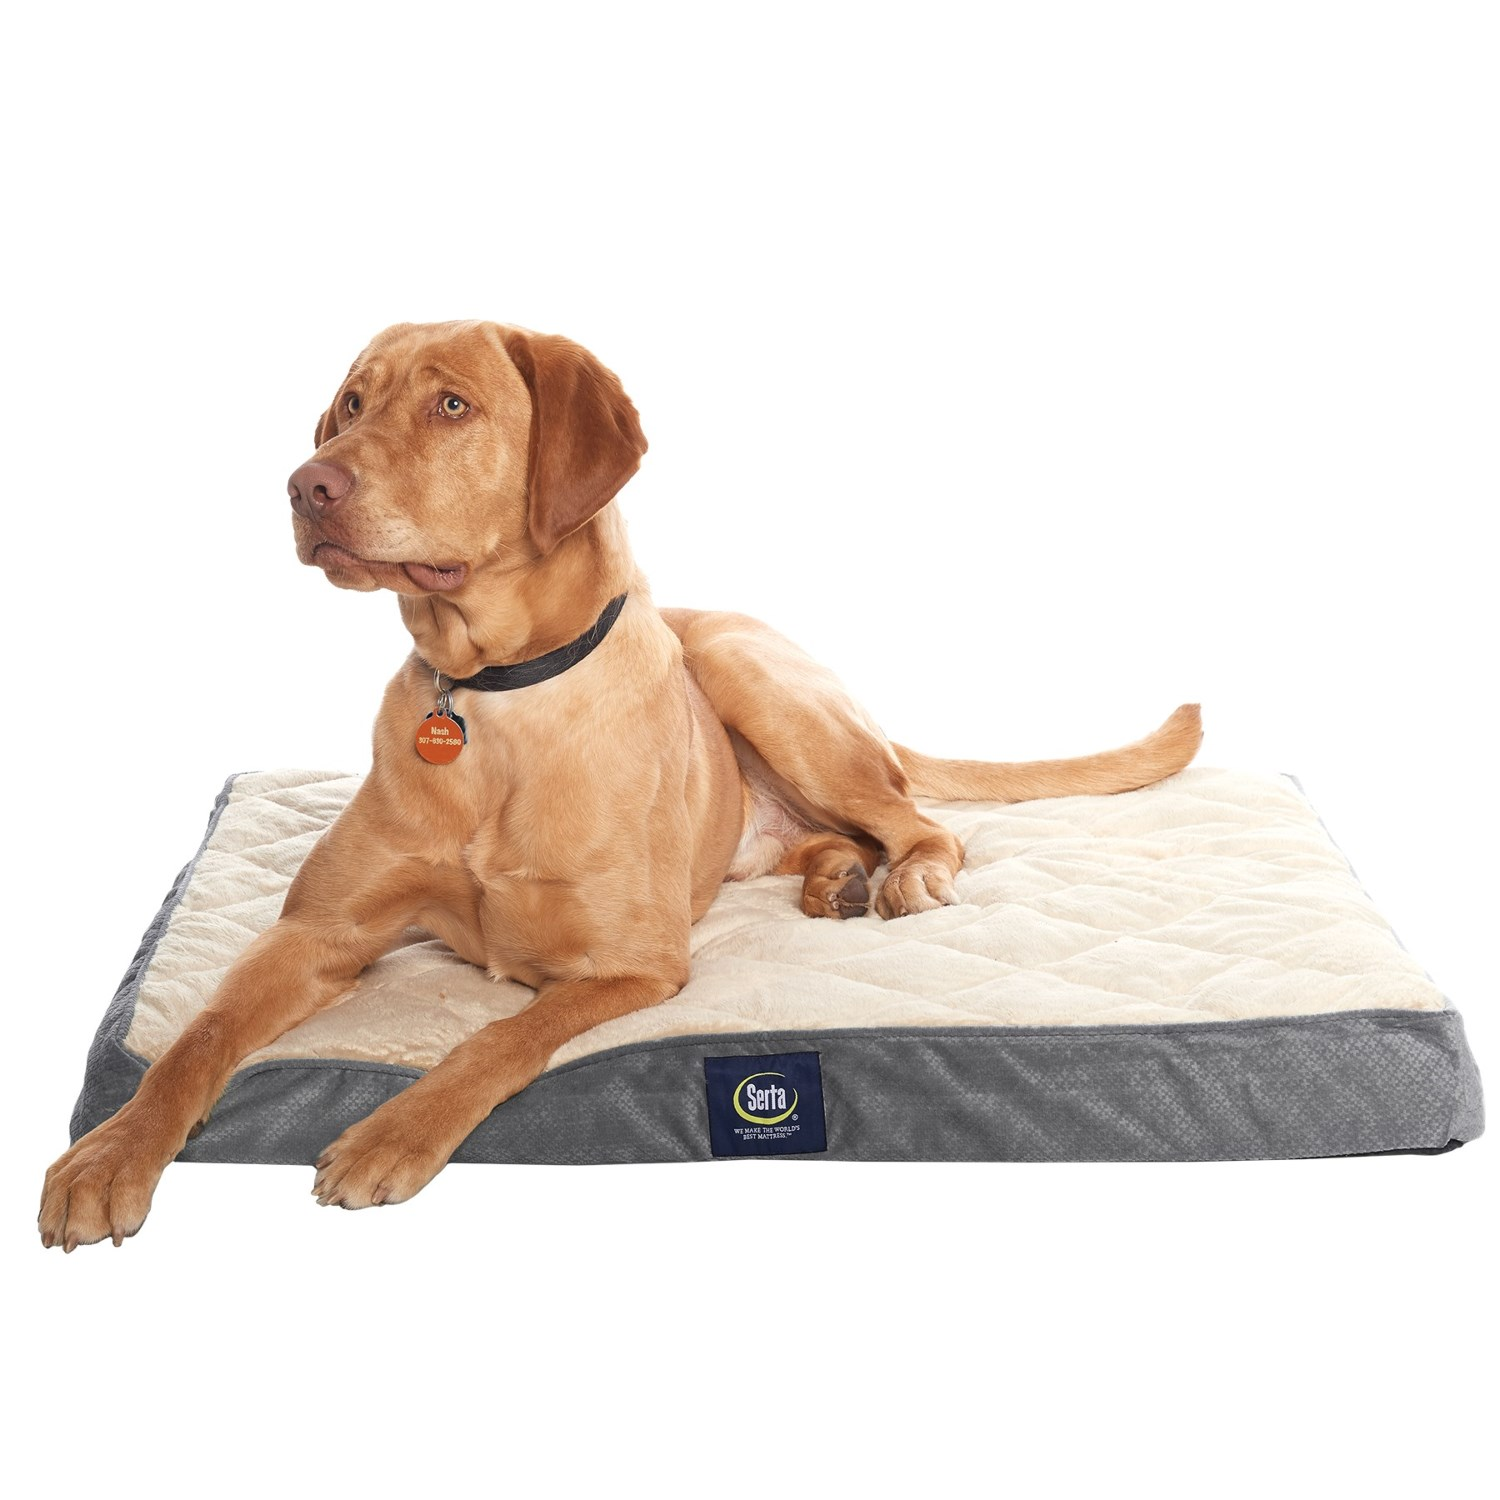 of full or night territory s dog pet serta for beds sleep hour a best bed more